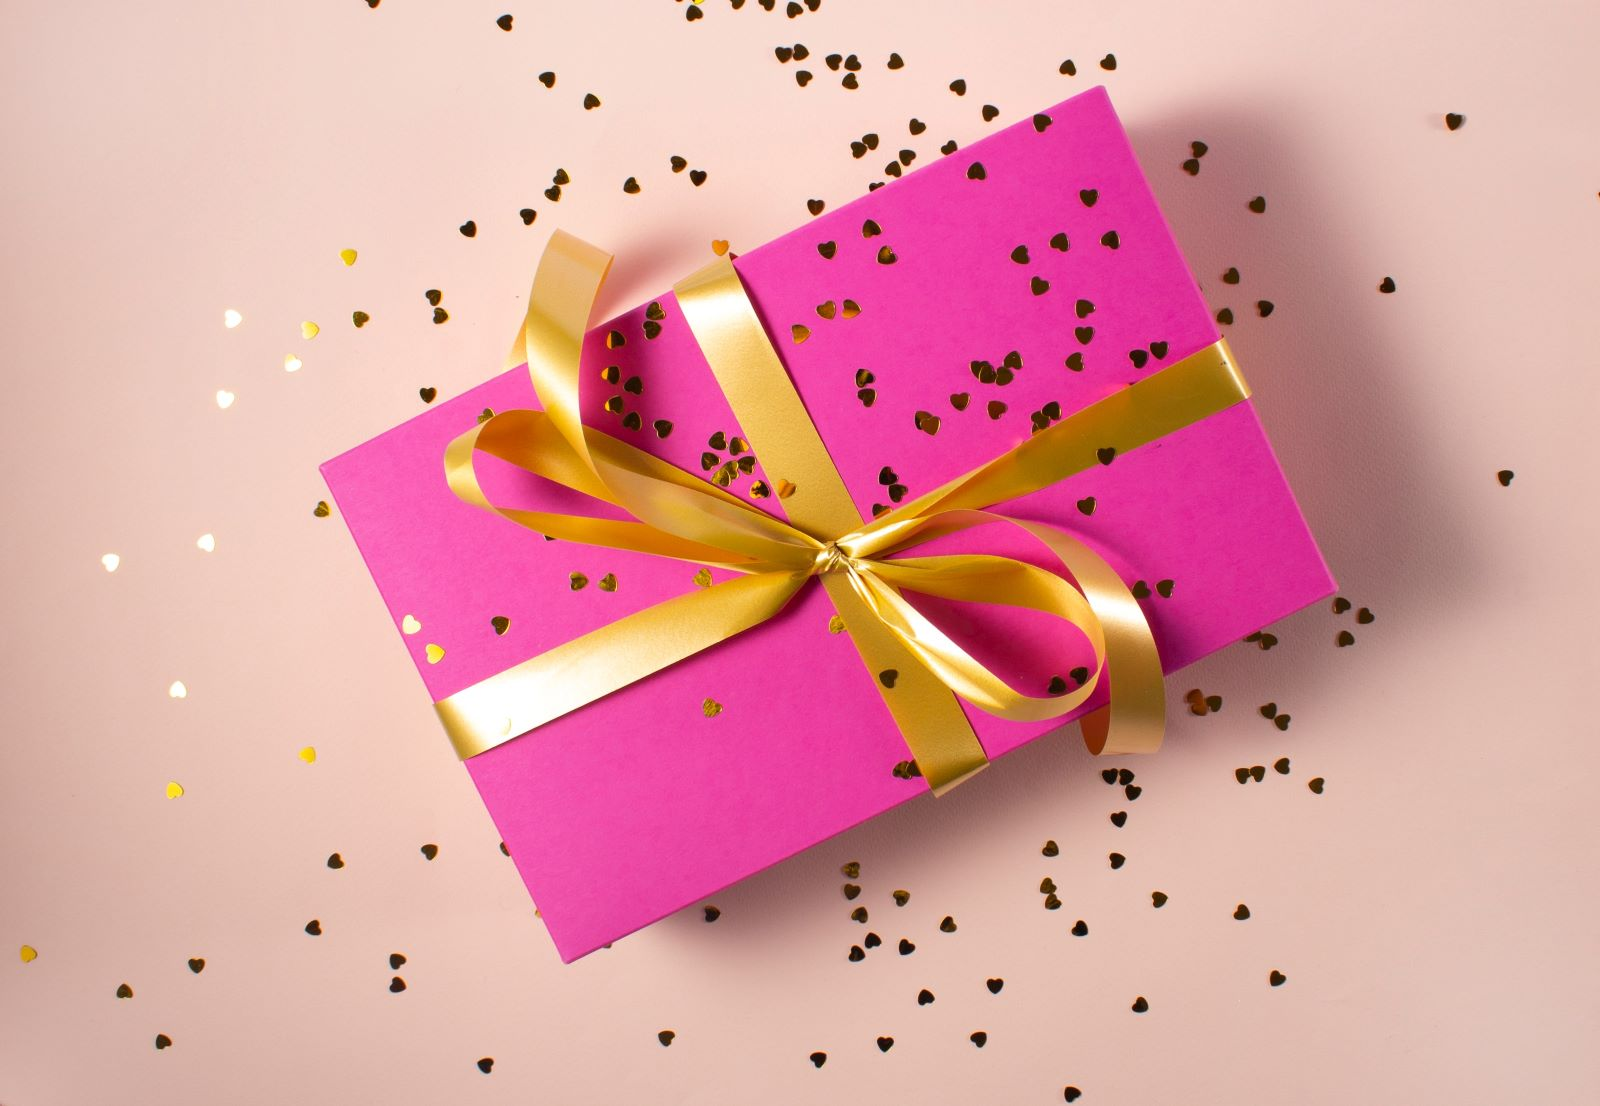 Pink gift box wrapped in gold ribbon